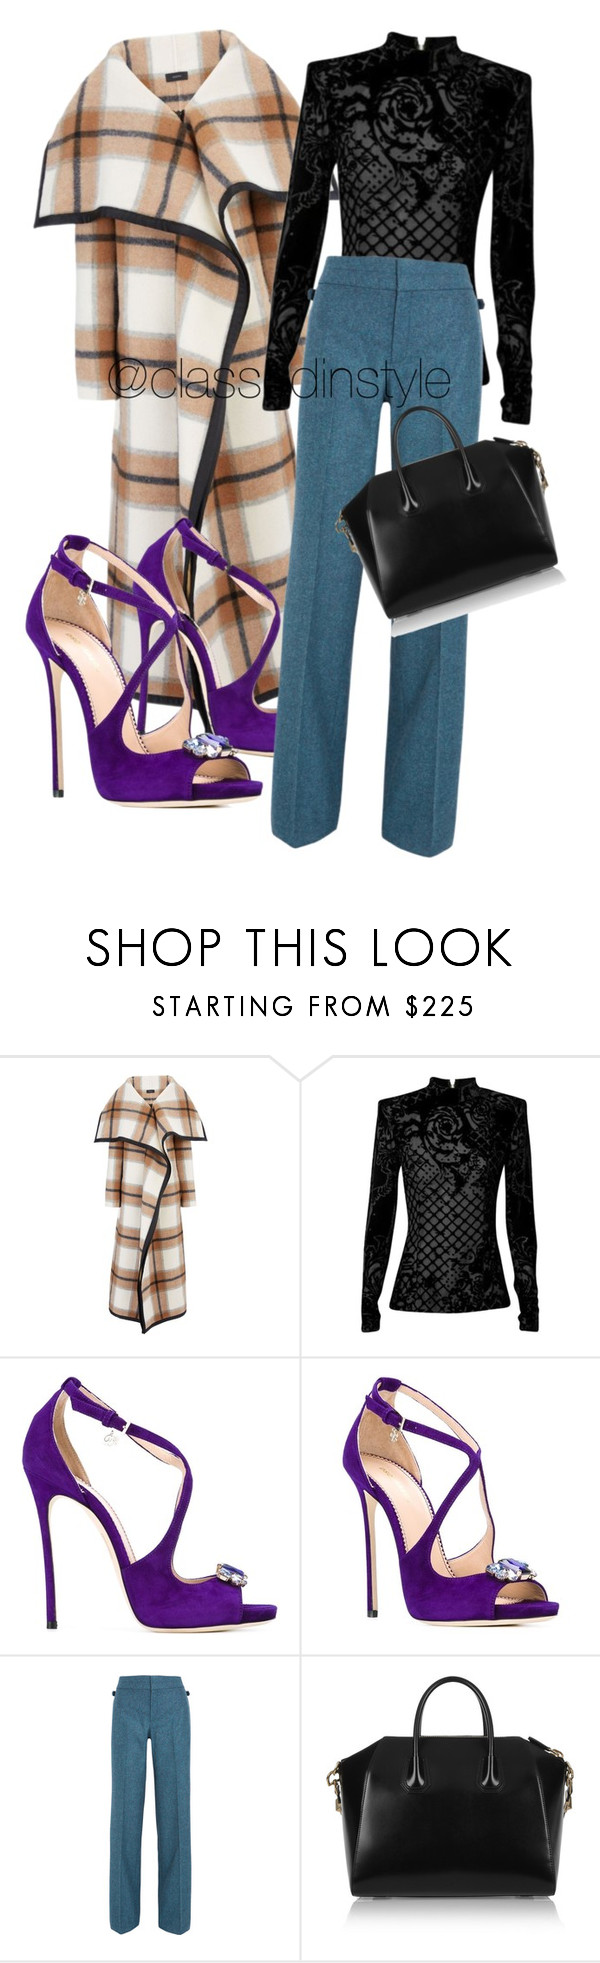 """Untitled #109"" by mama-liciuos ❤ liked on Polyvore featuring Joseph, Balmain, Dsquared2, Gucci and Givenchy"